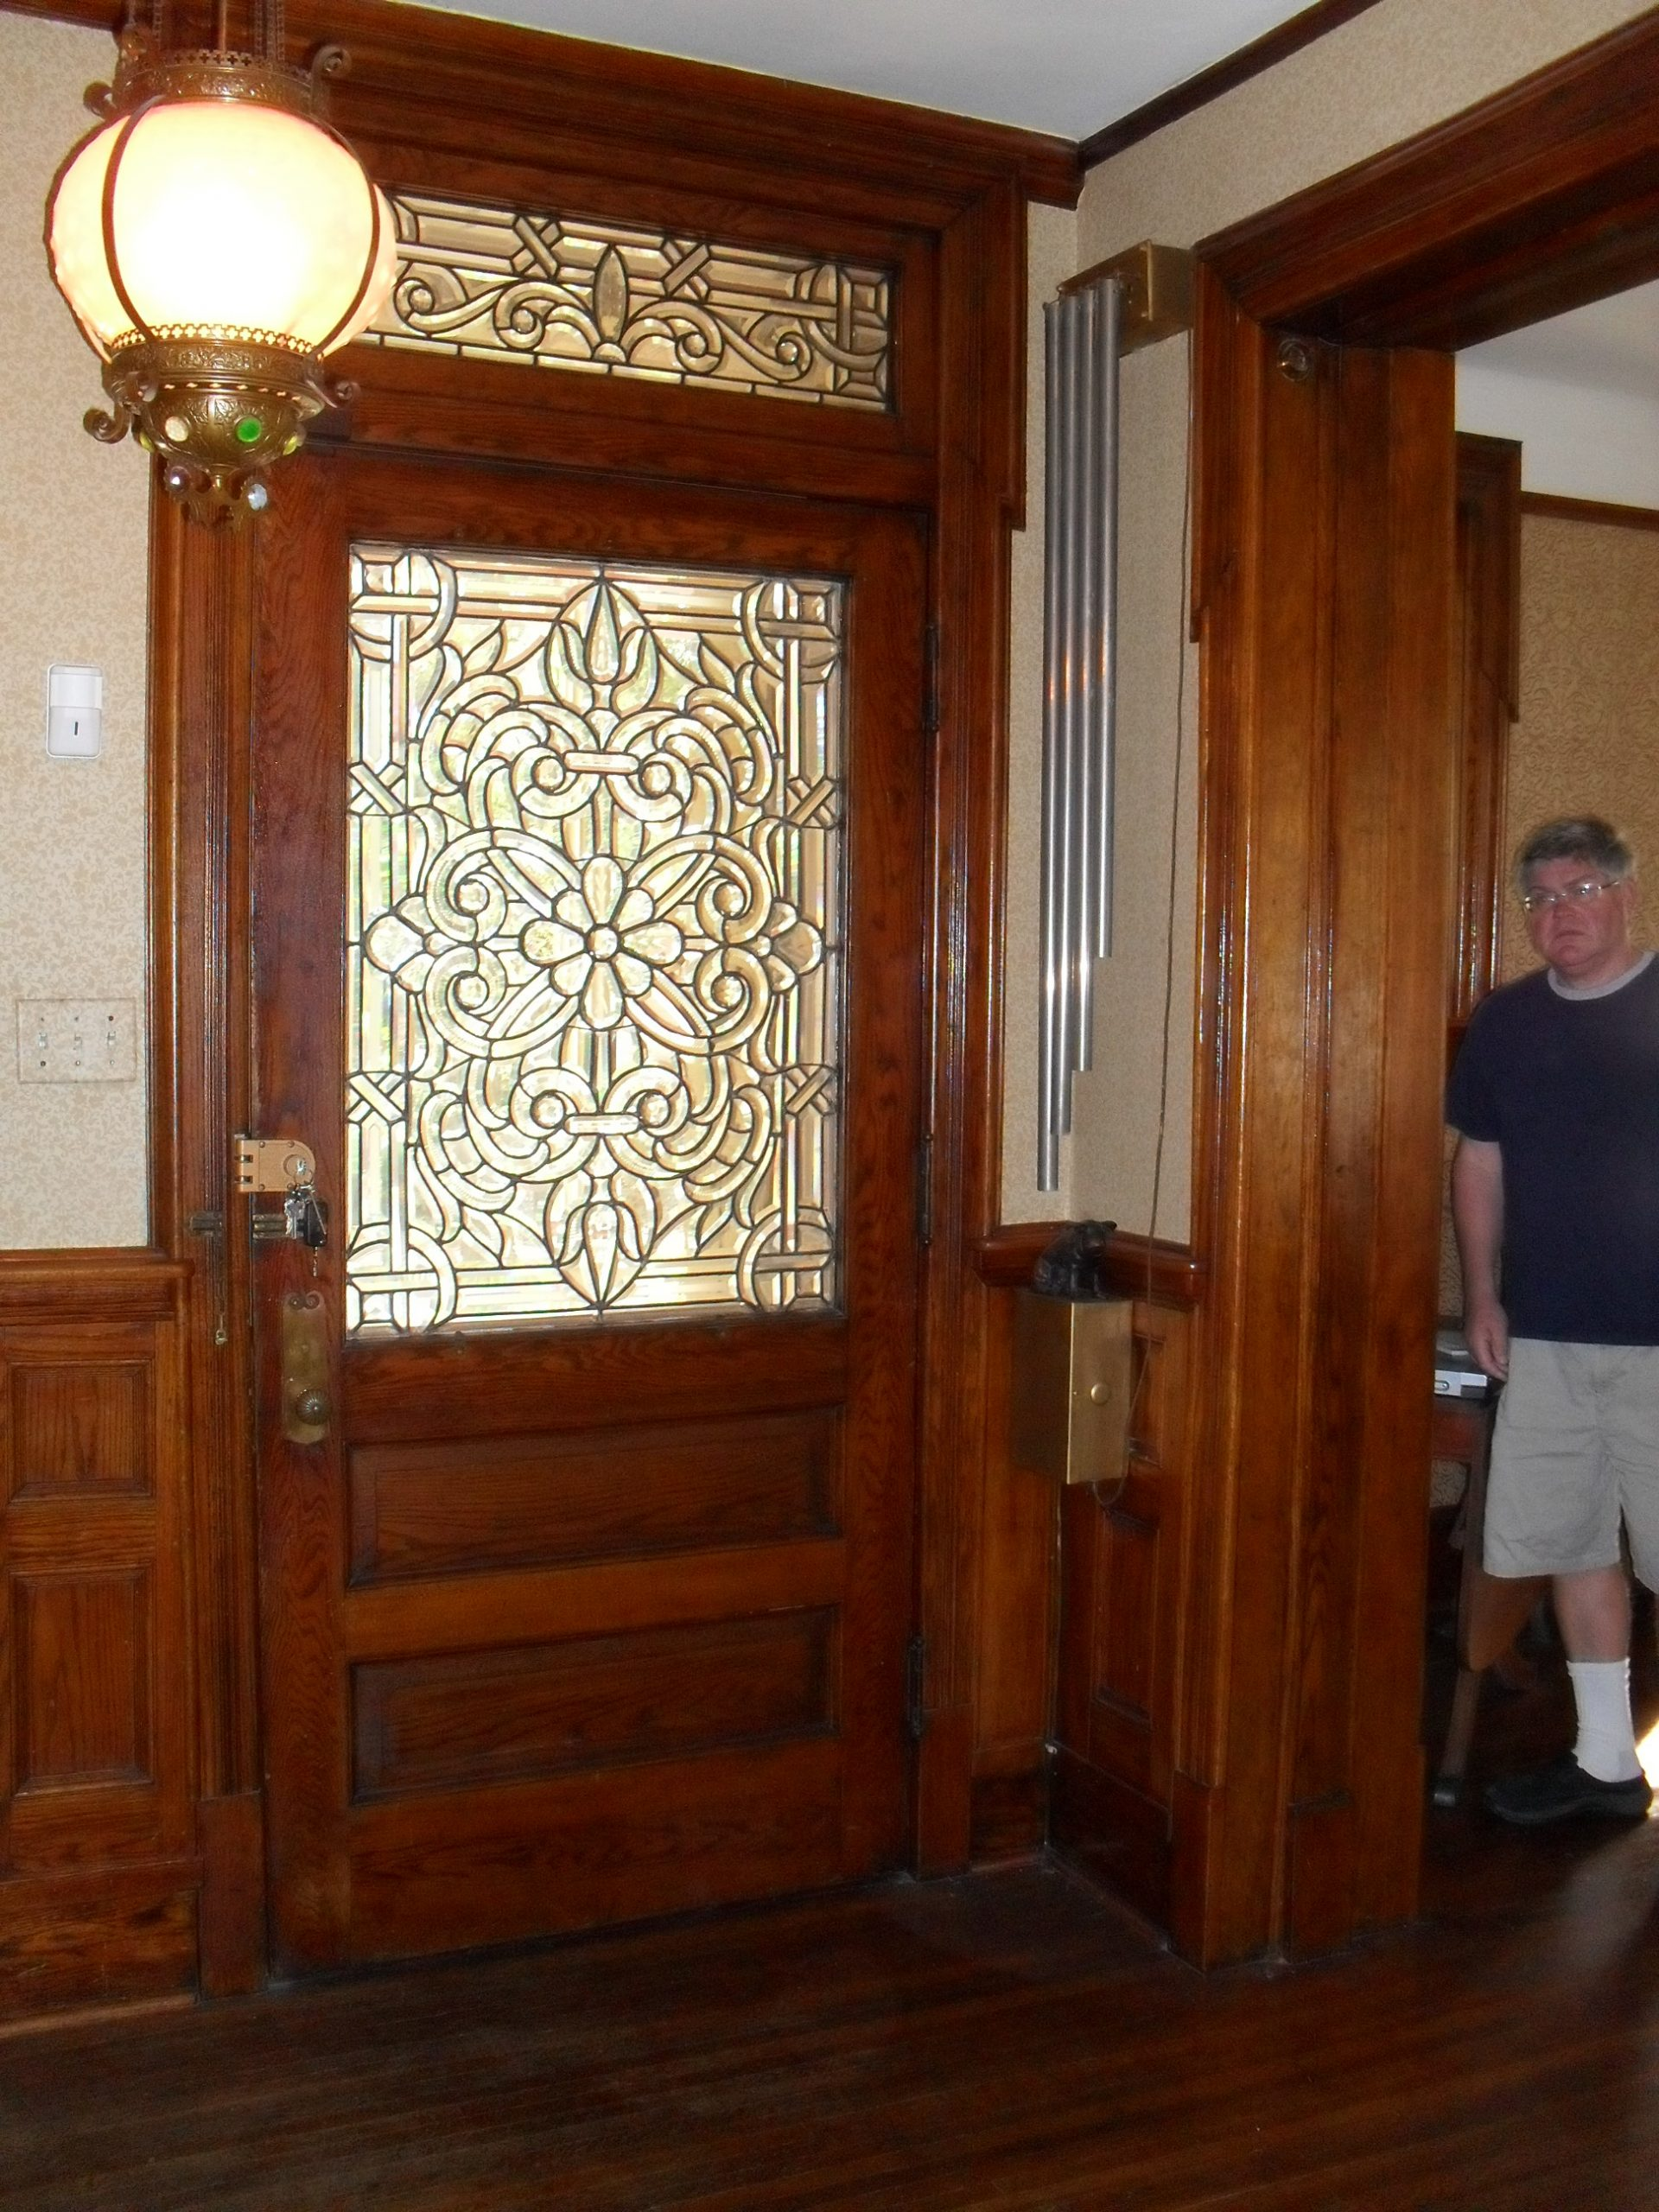 There was leaded glass and woodwork throughout the house.